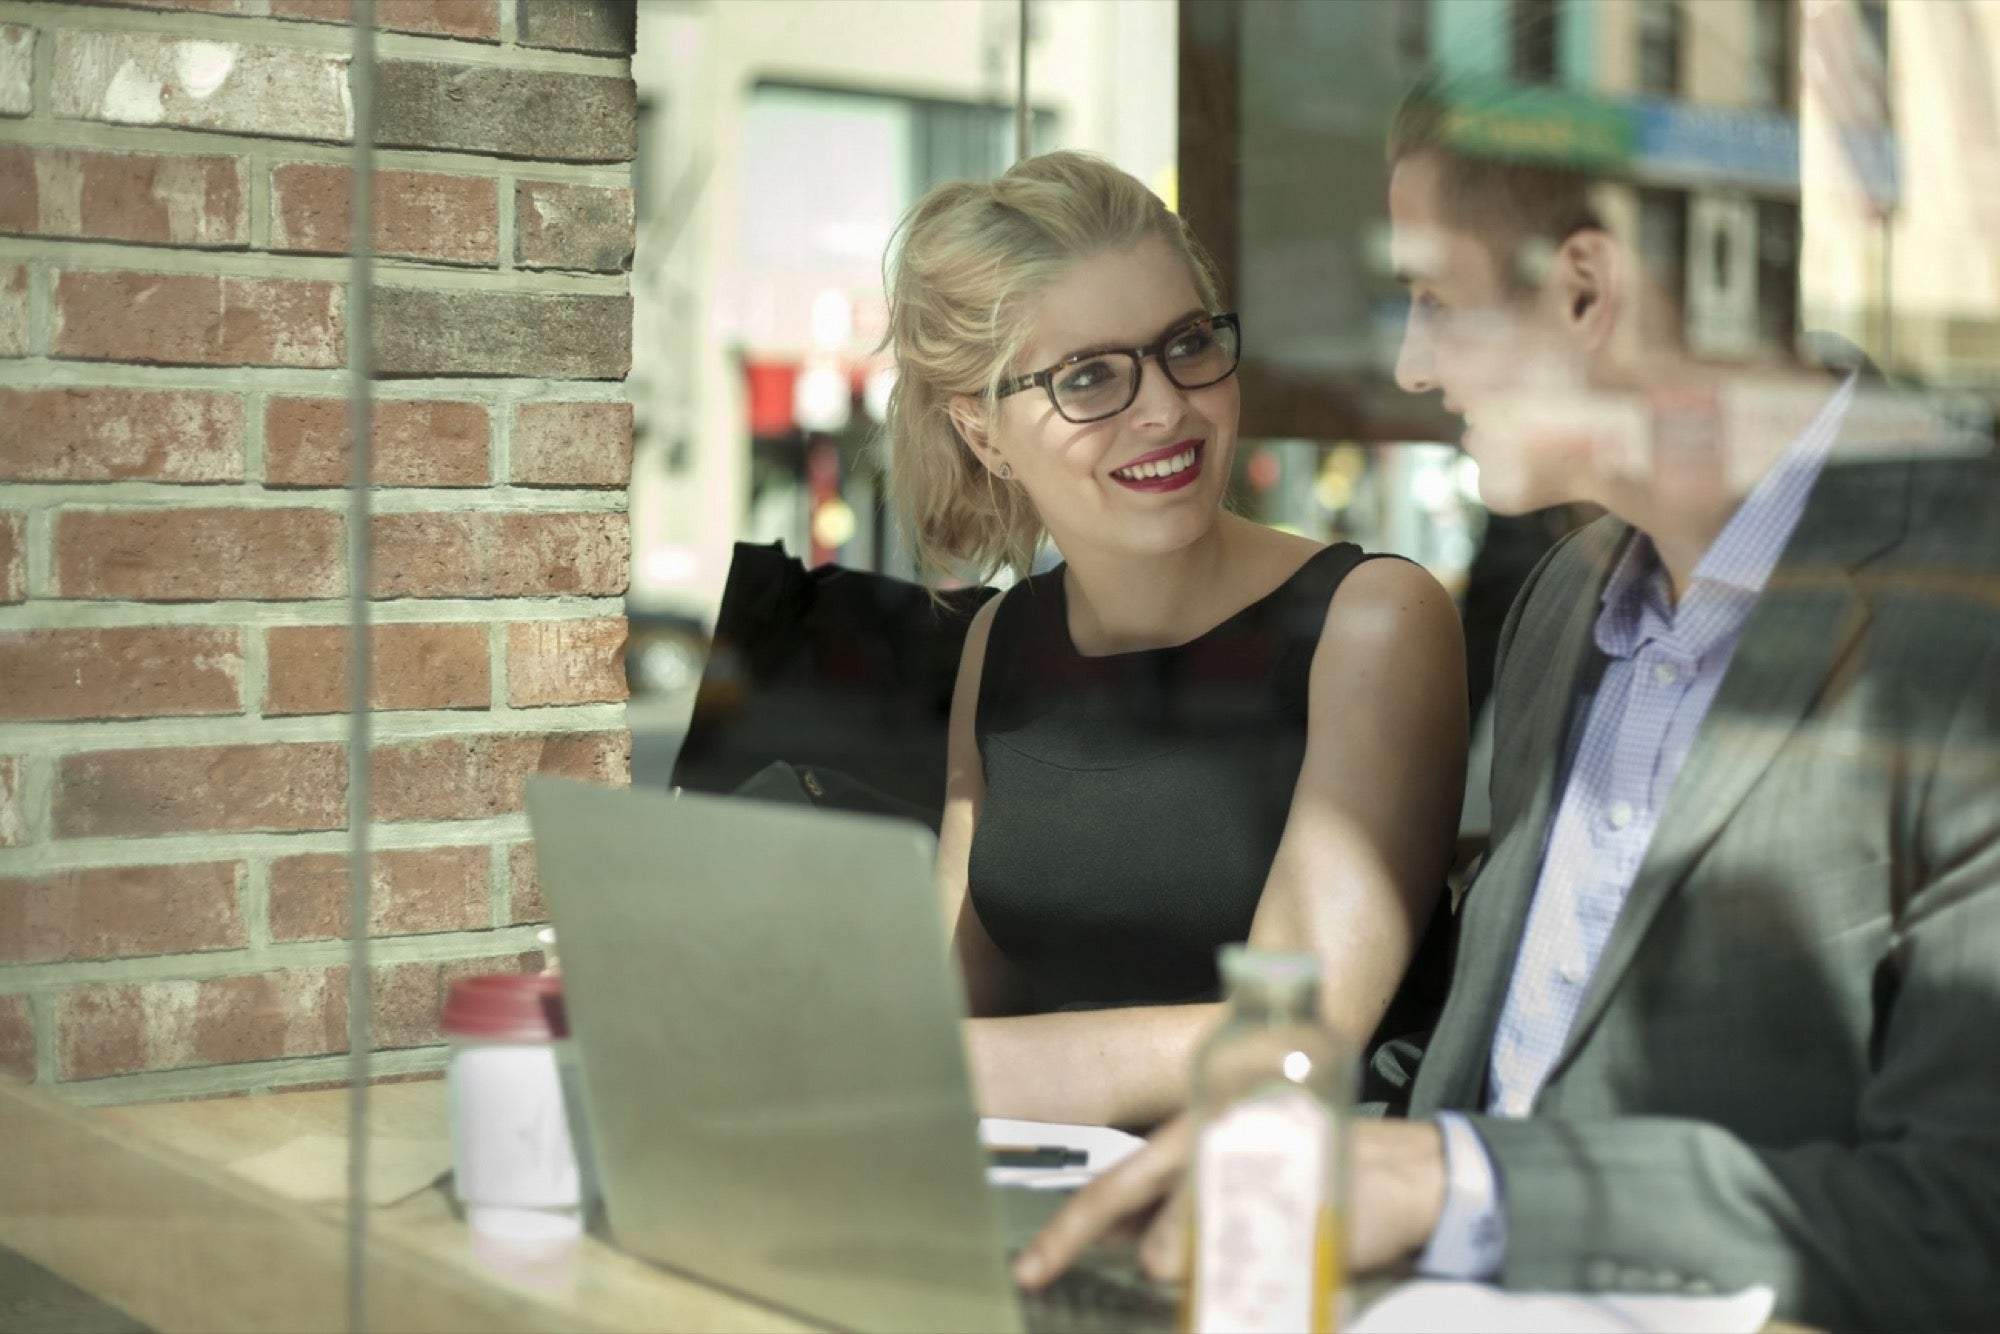 10 Ways to Connect With Absolutely Anyone You Meet